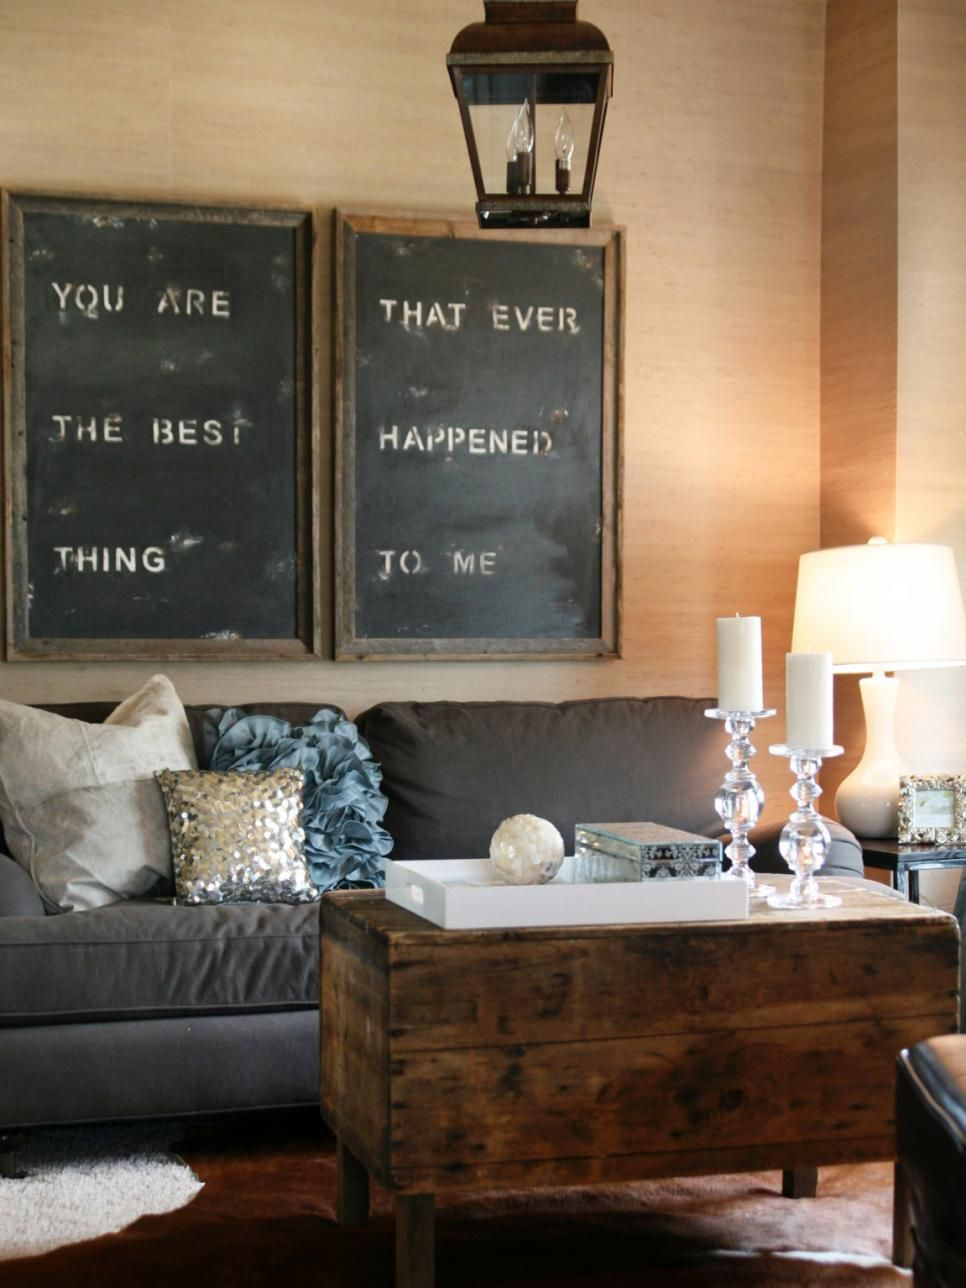 The decorating experts at HGTV.com share 15 tips for creatively updating your living room for almost no cost.